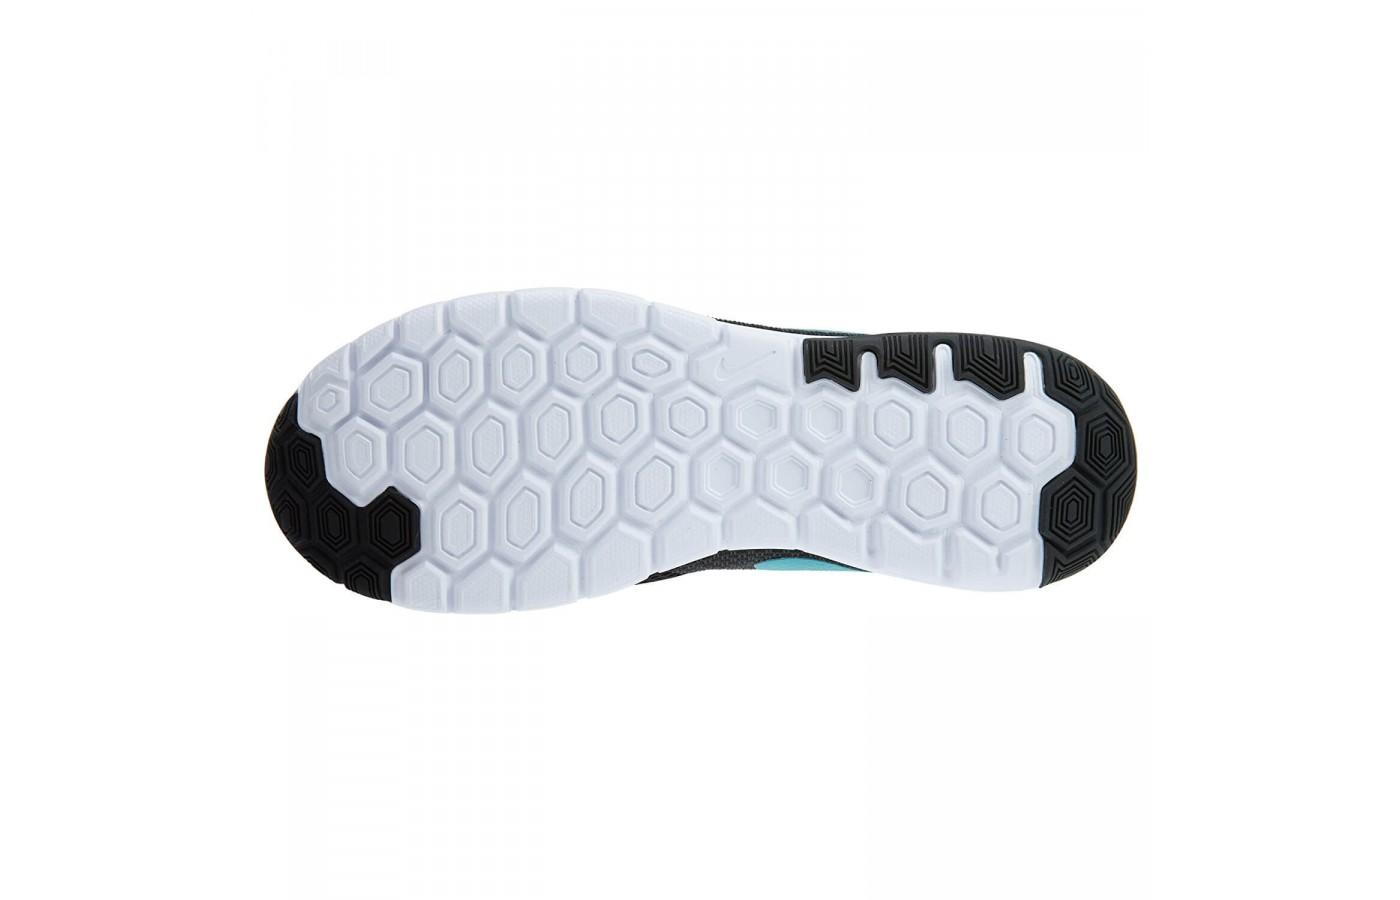 779d1feae ... The outsole of the Nike Flex Experience RN 6 is durable and the  hexagonal lugs provide ...